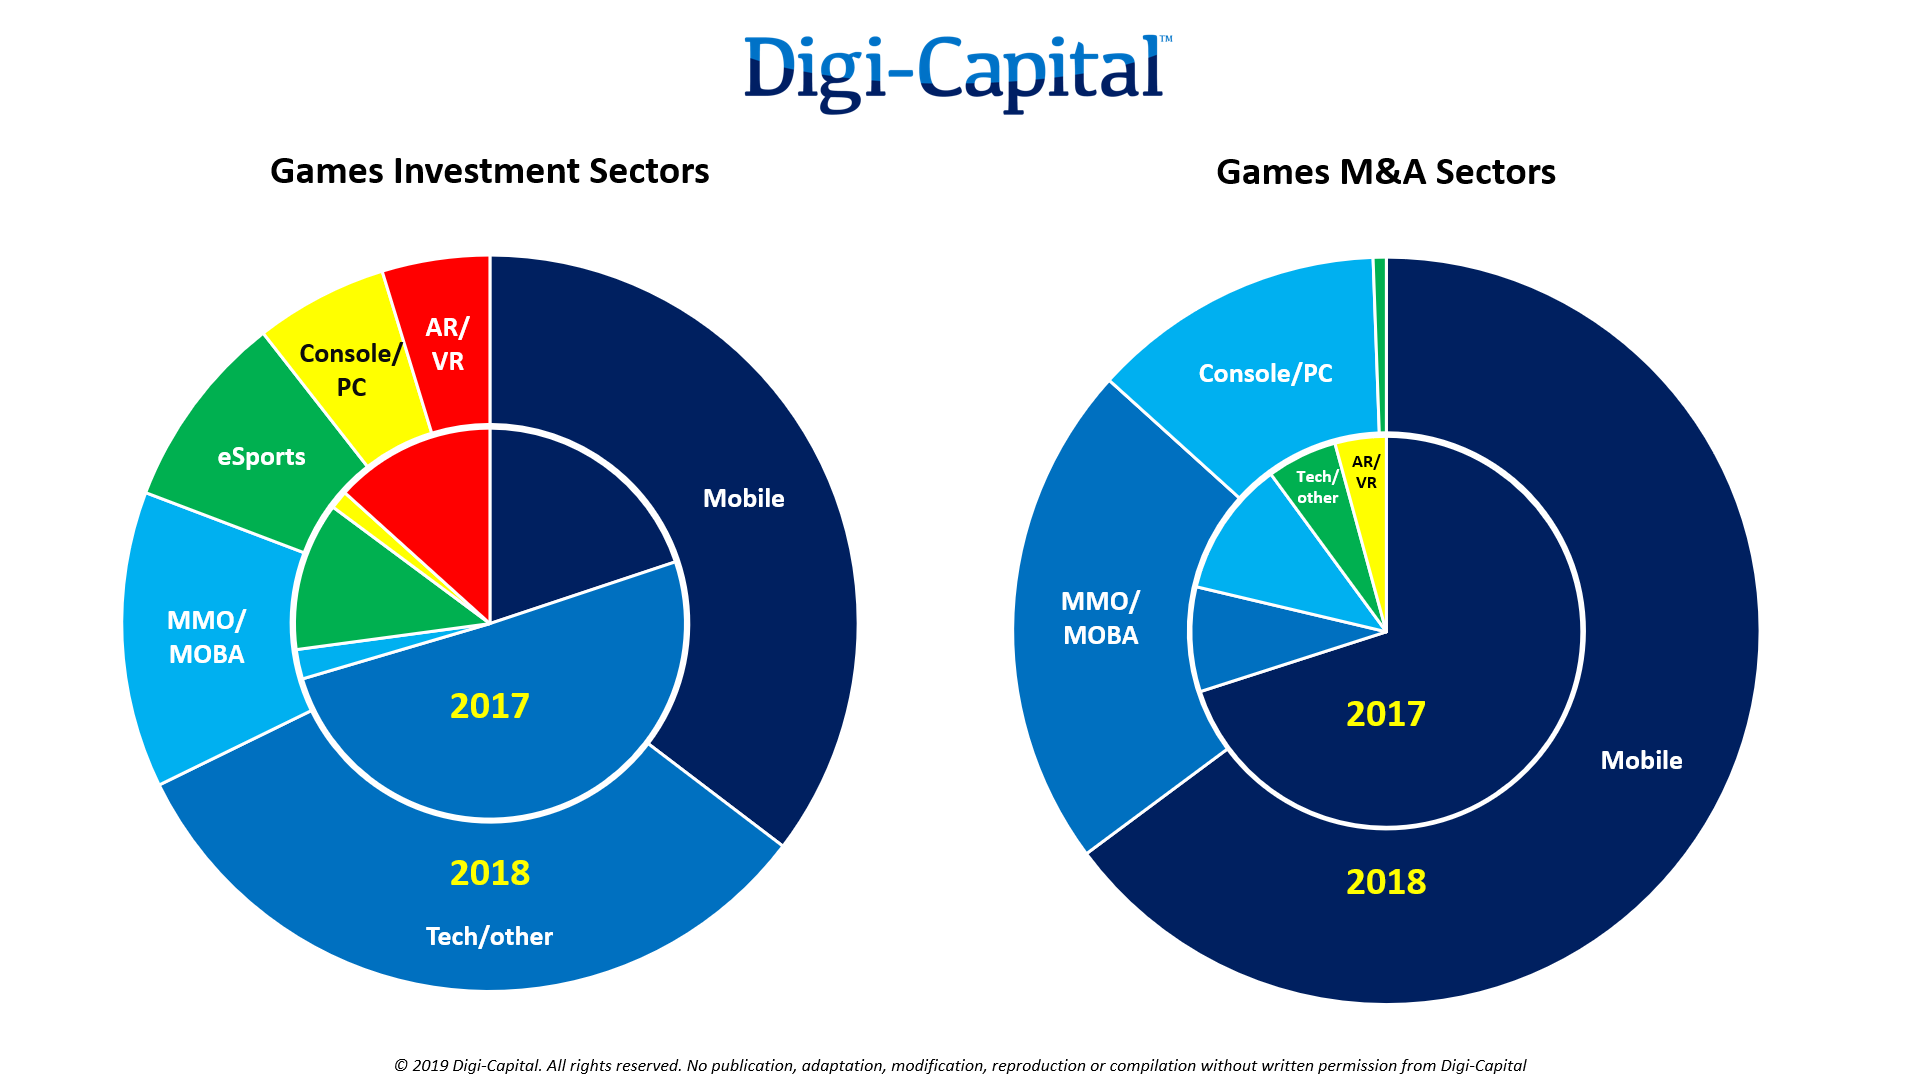 Source: Digi-Capital Games Report Q1 2019